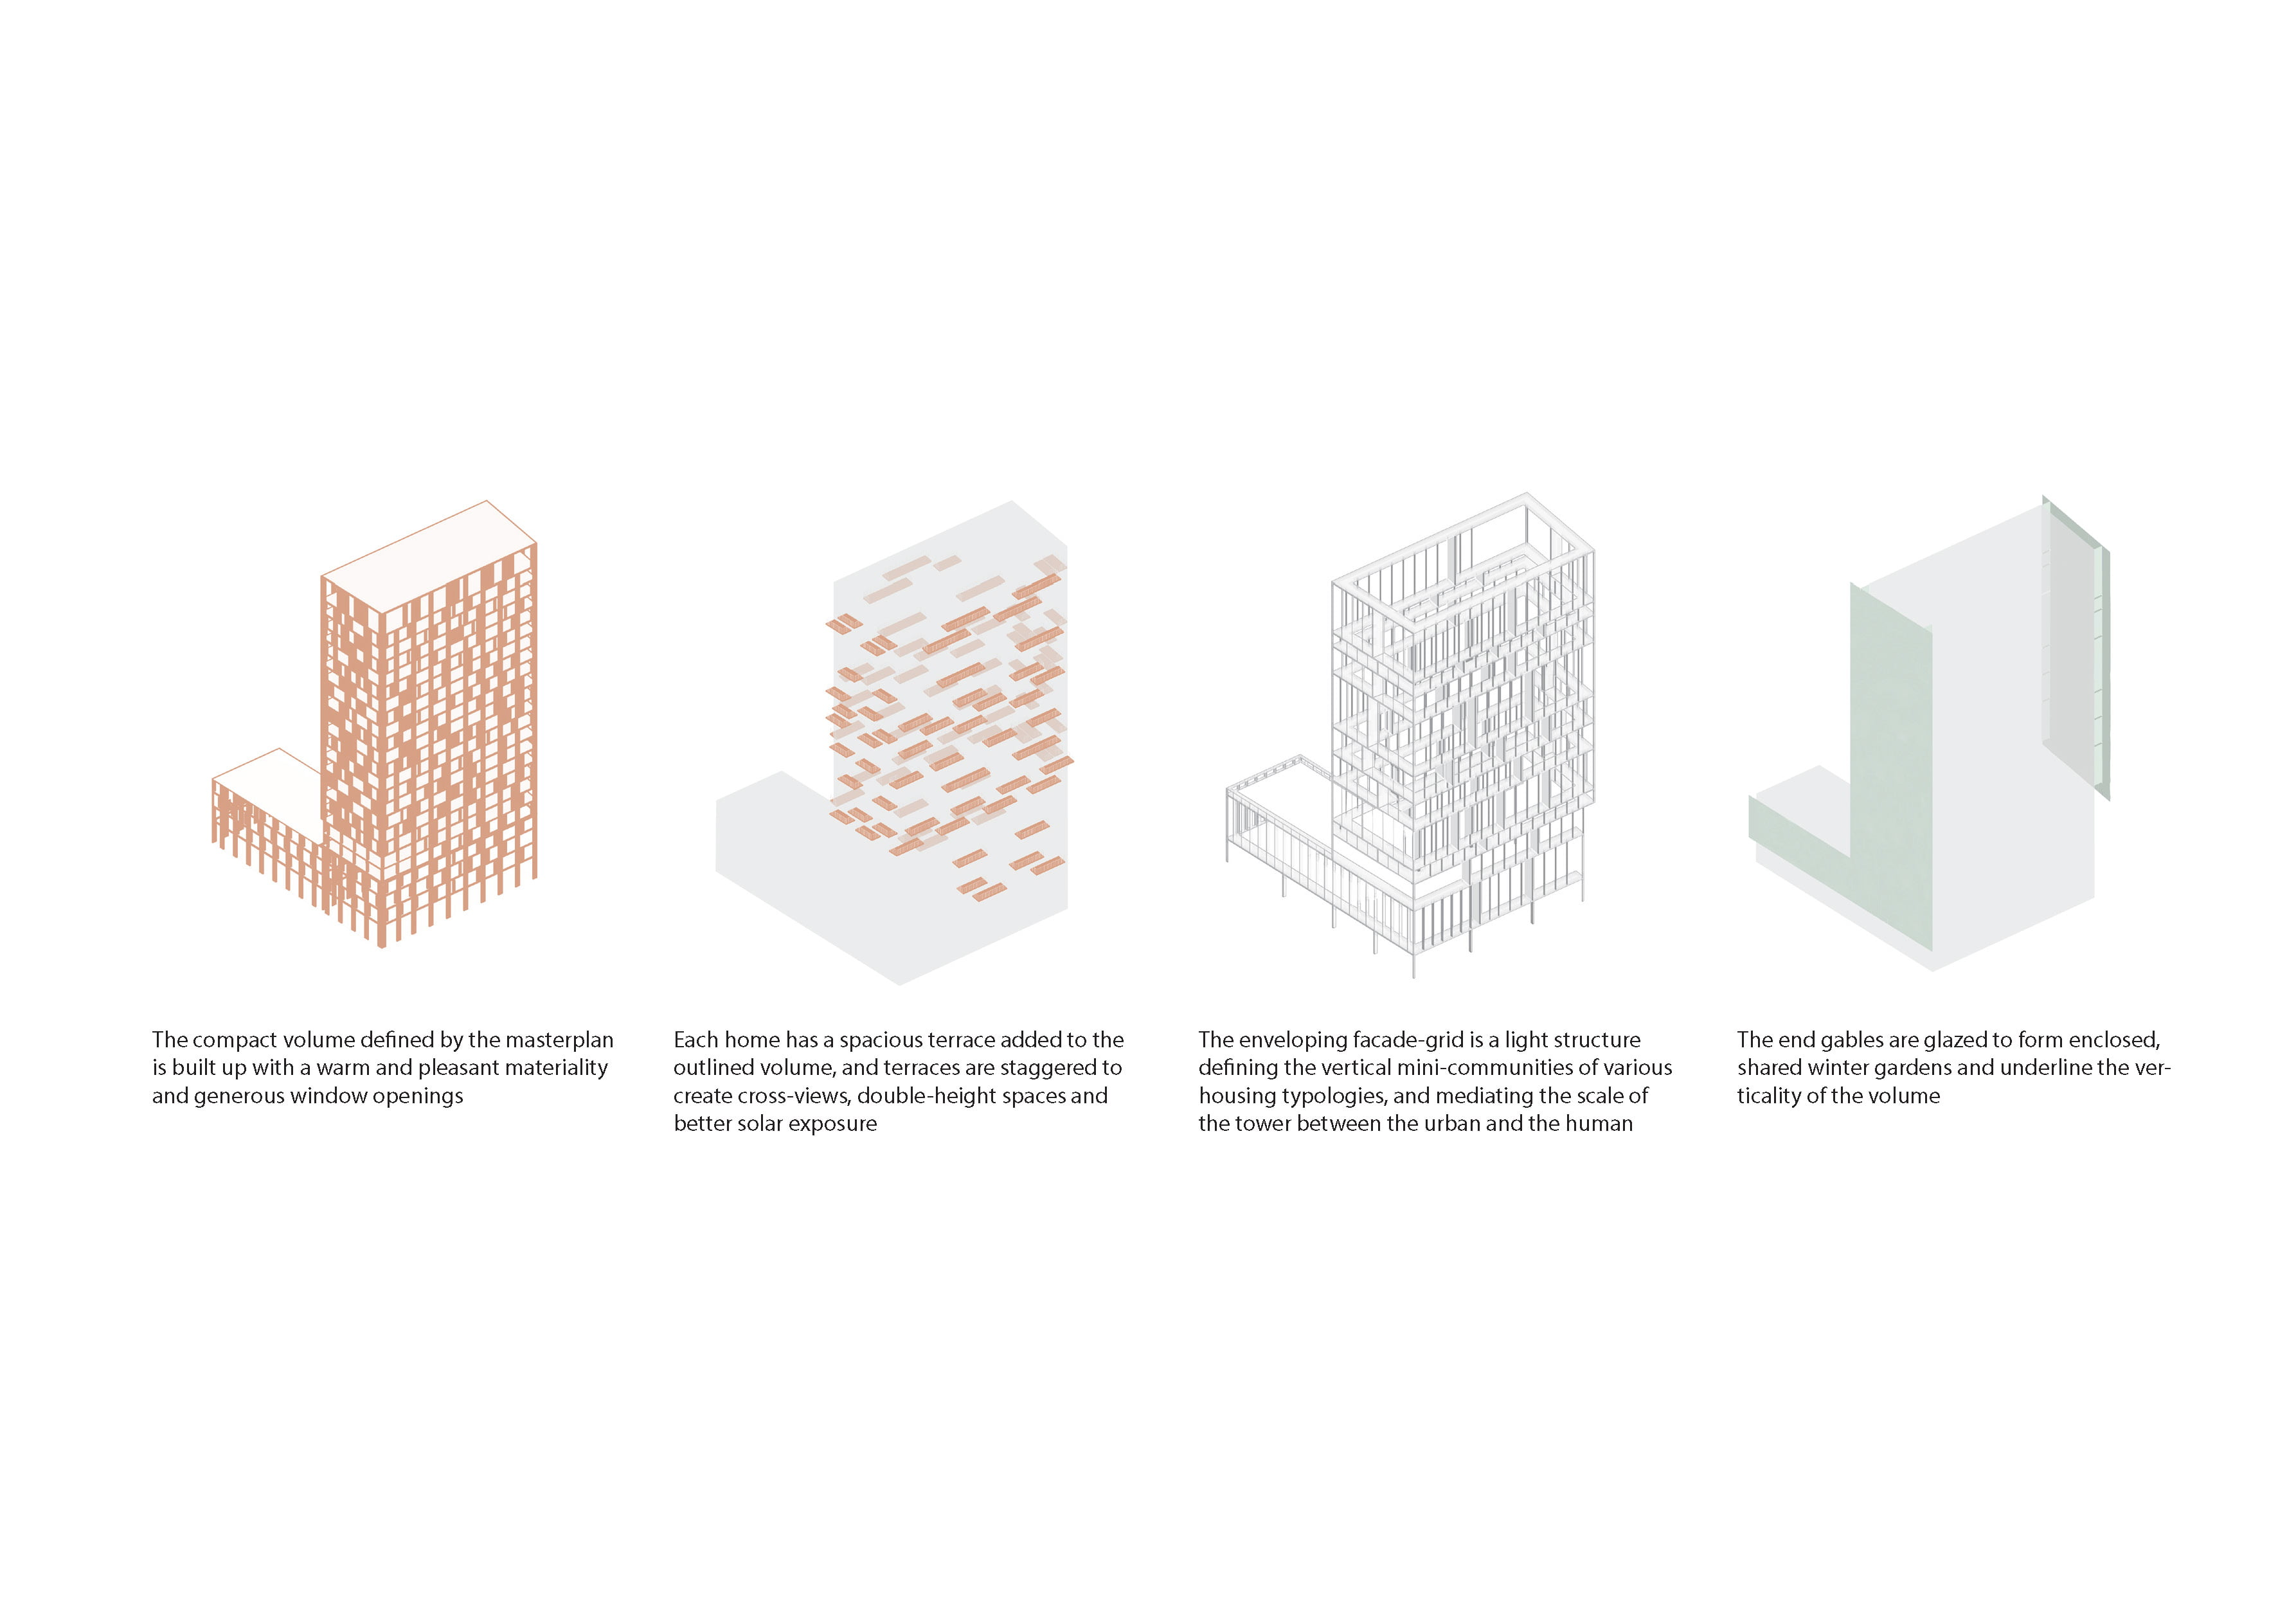 vertical urban planning,